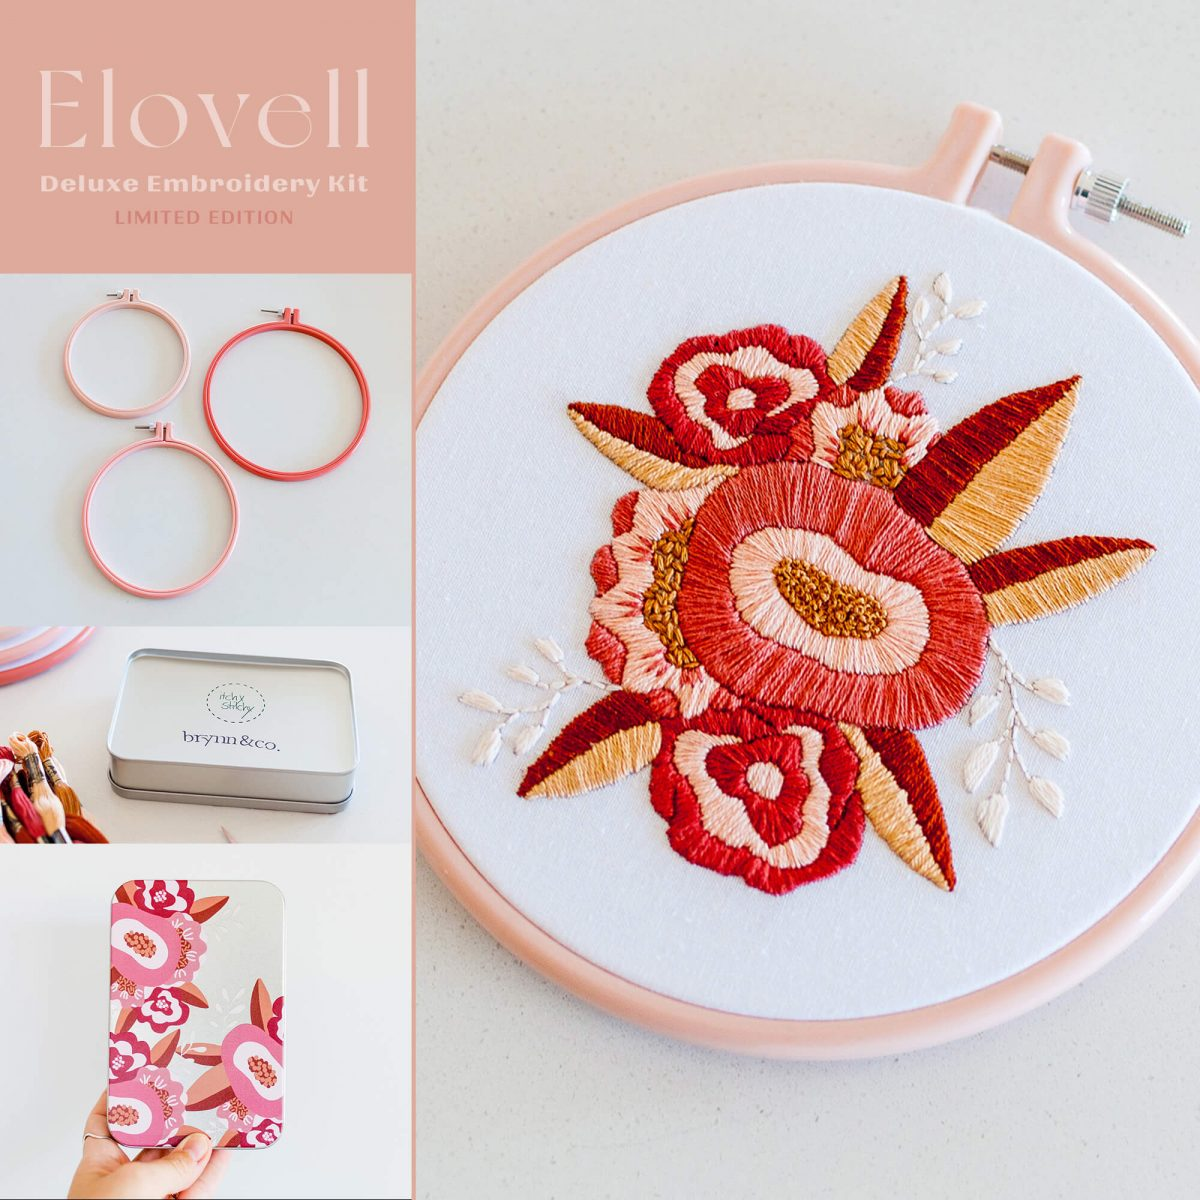 Elovell Floral Bloom Do It Yourself Embroidery Kit